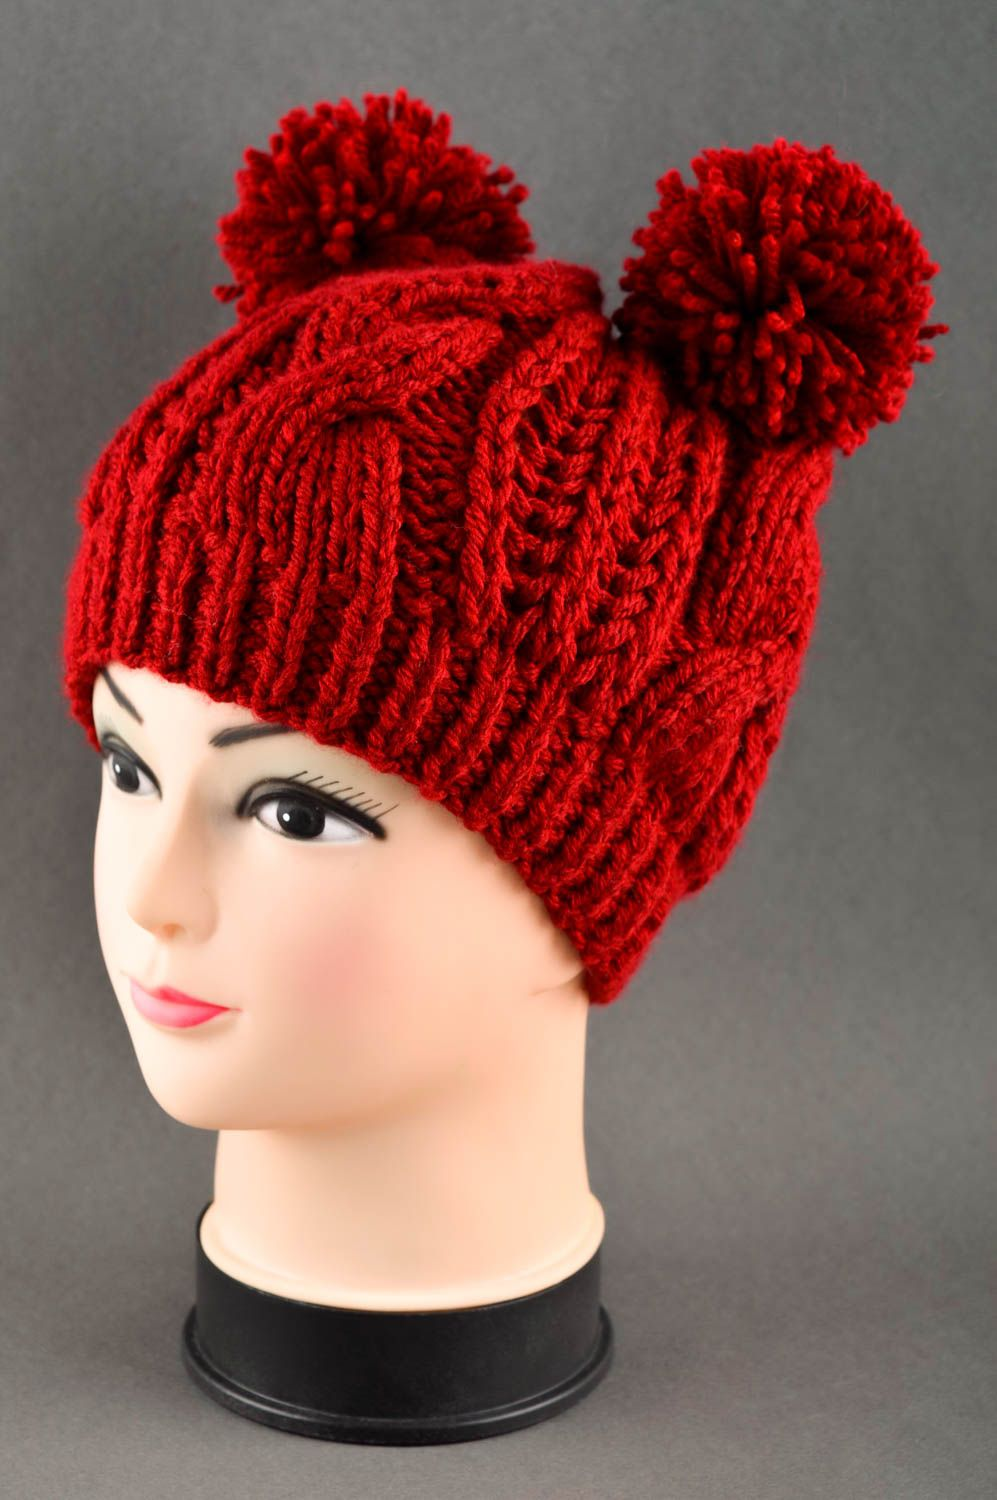 headwear Handmade knitted hat women hat winter accessories stylish hat for girls - MADEheart.com